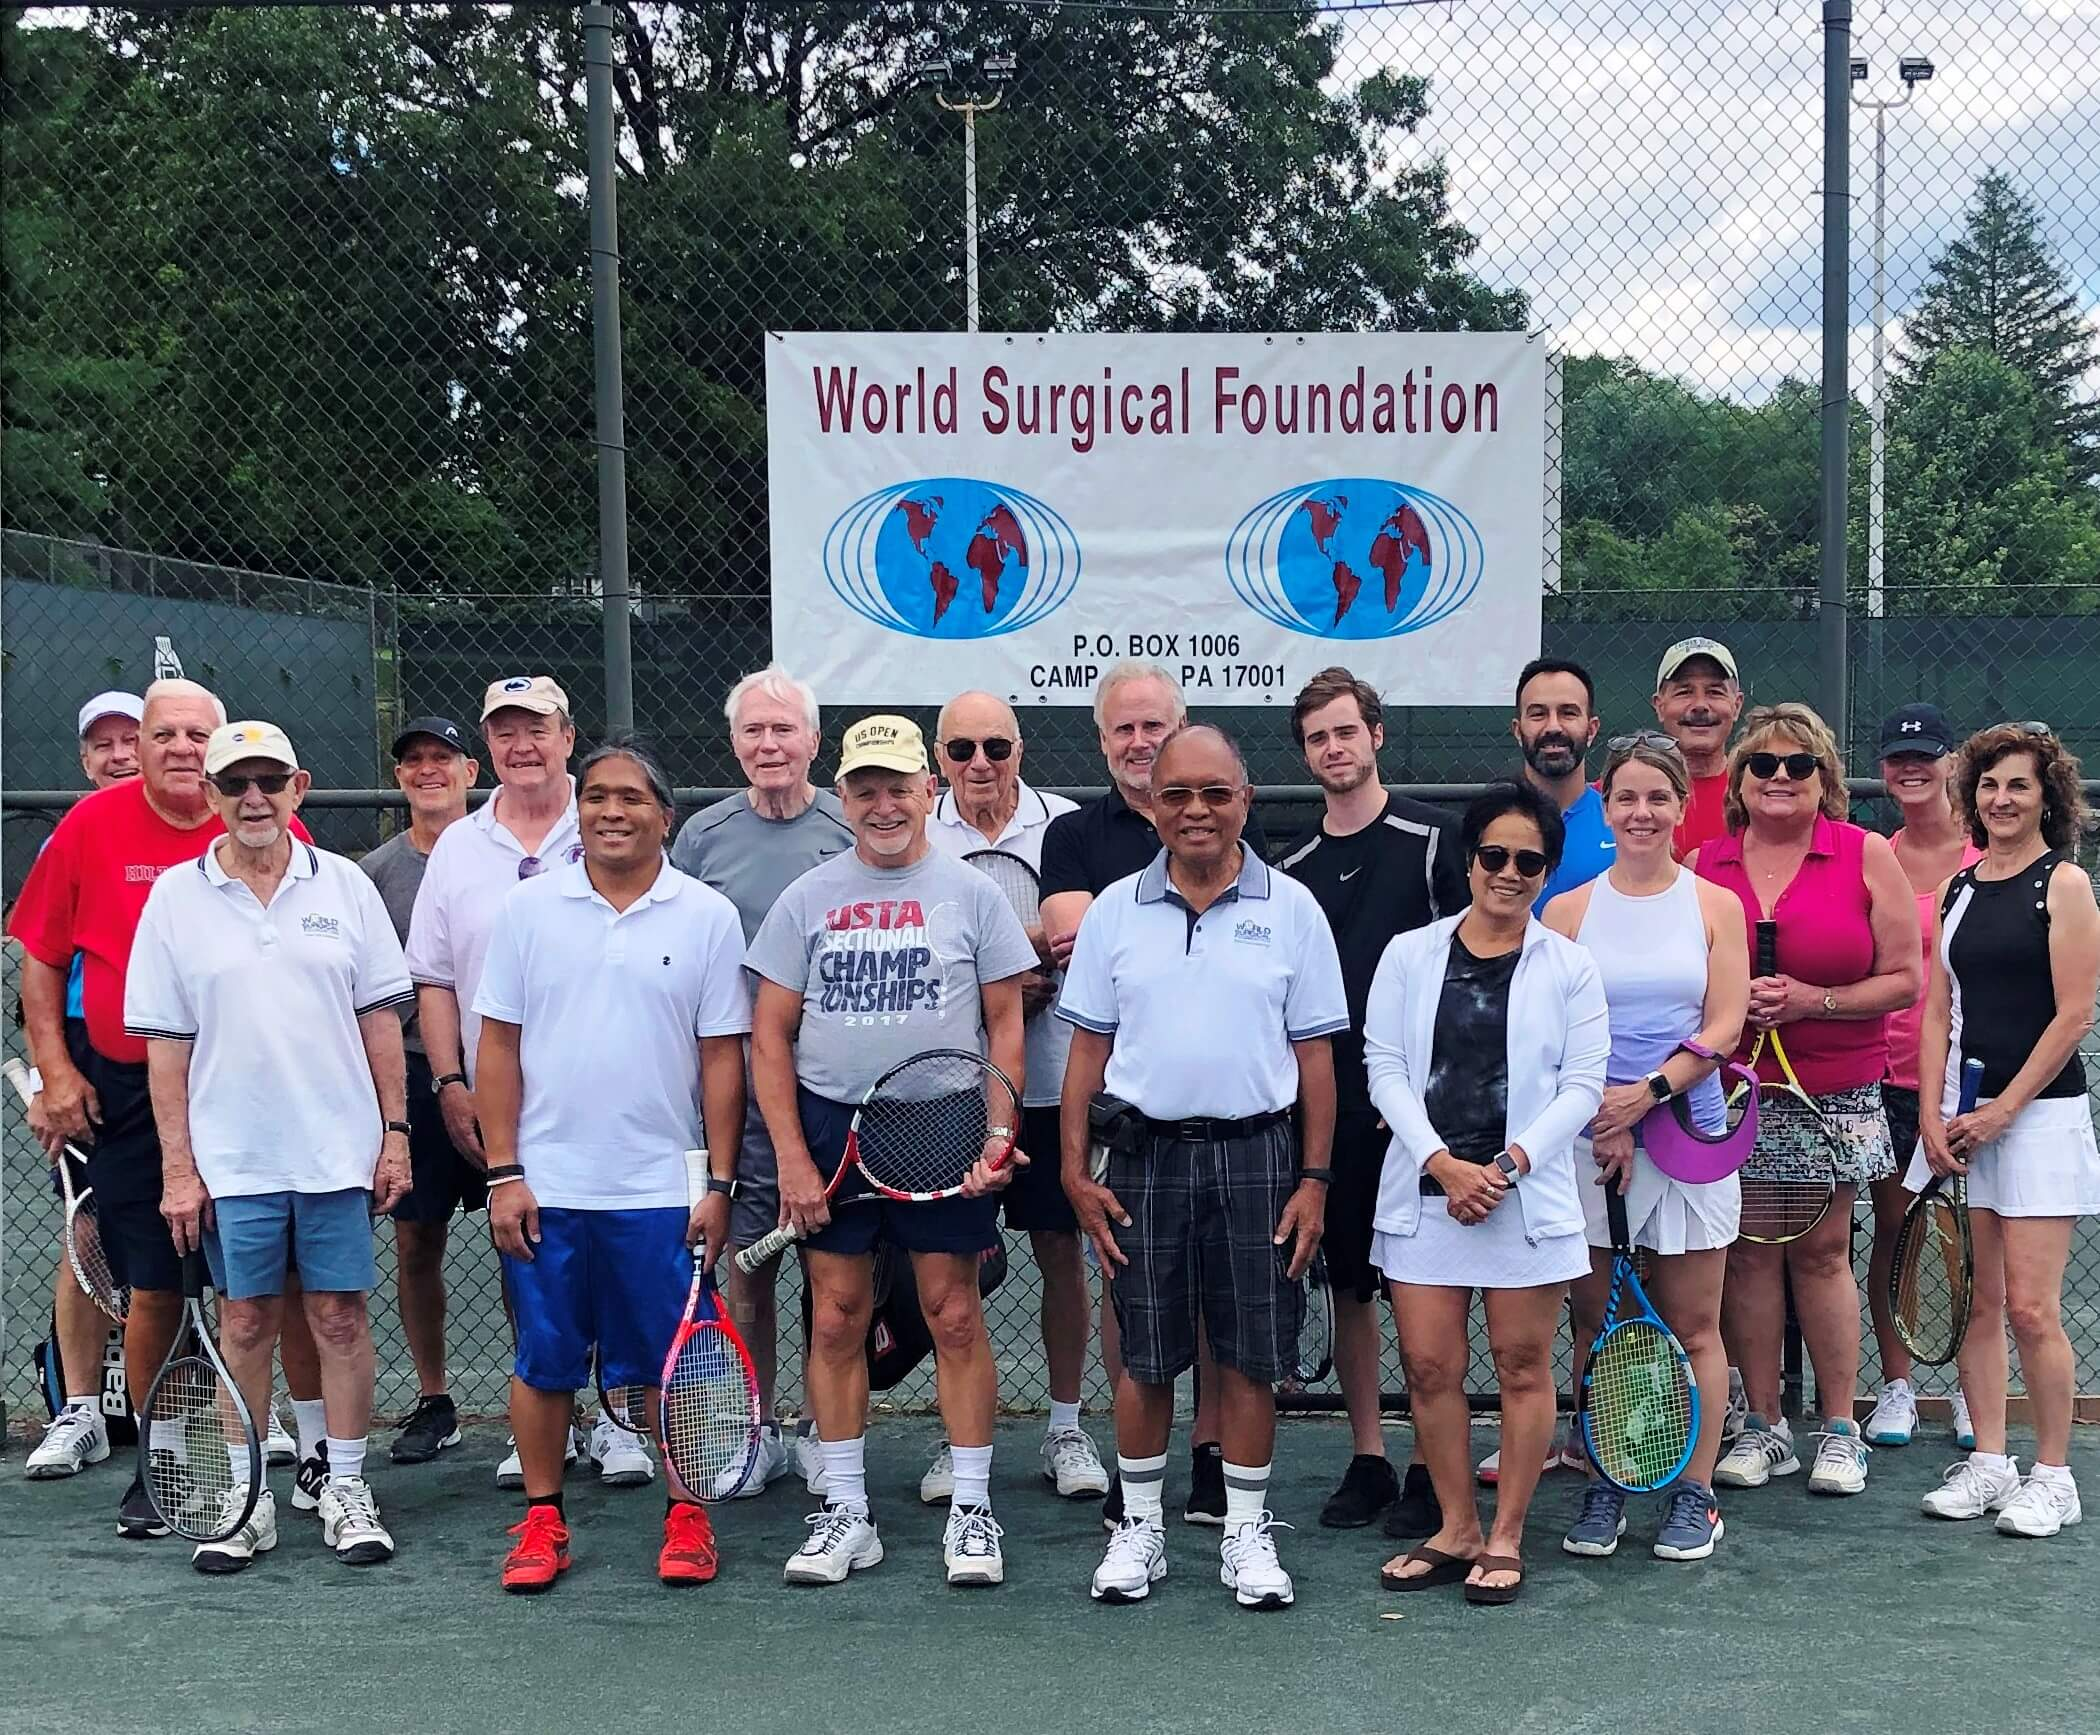 Landmark sponsors World Surgical Foundation's Annual Tennis FUNdraiser